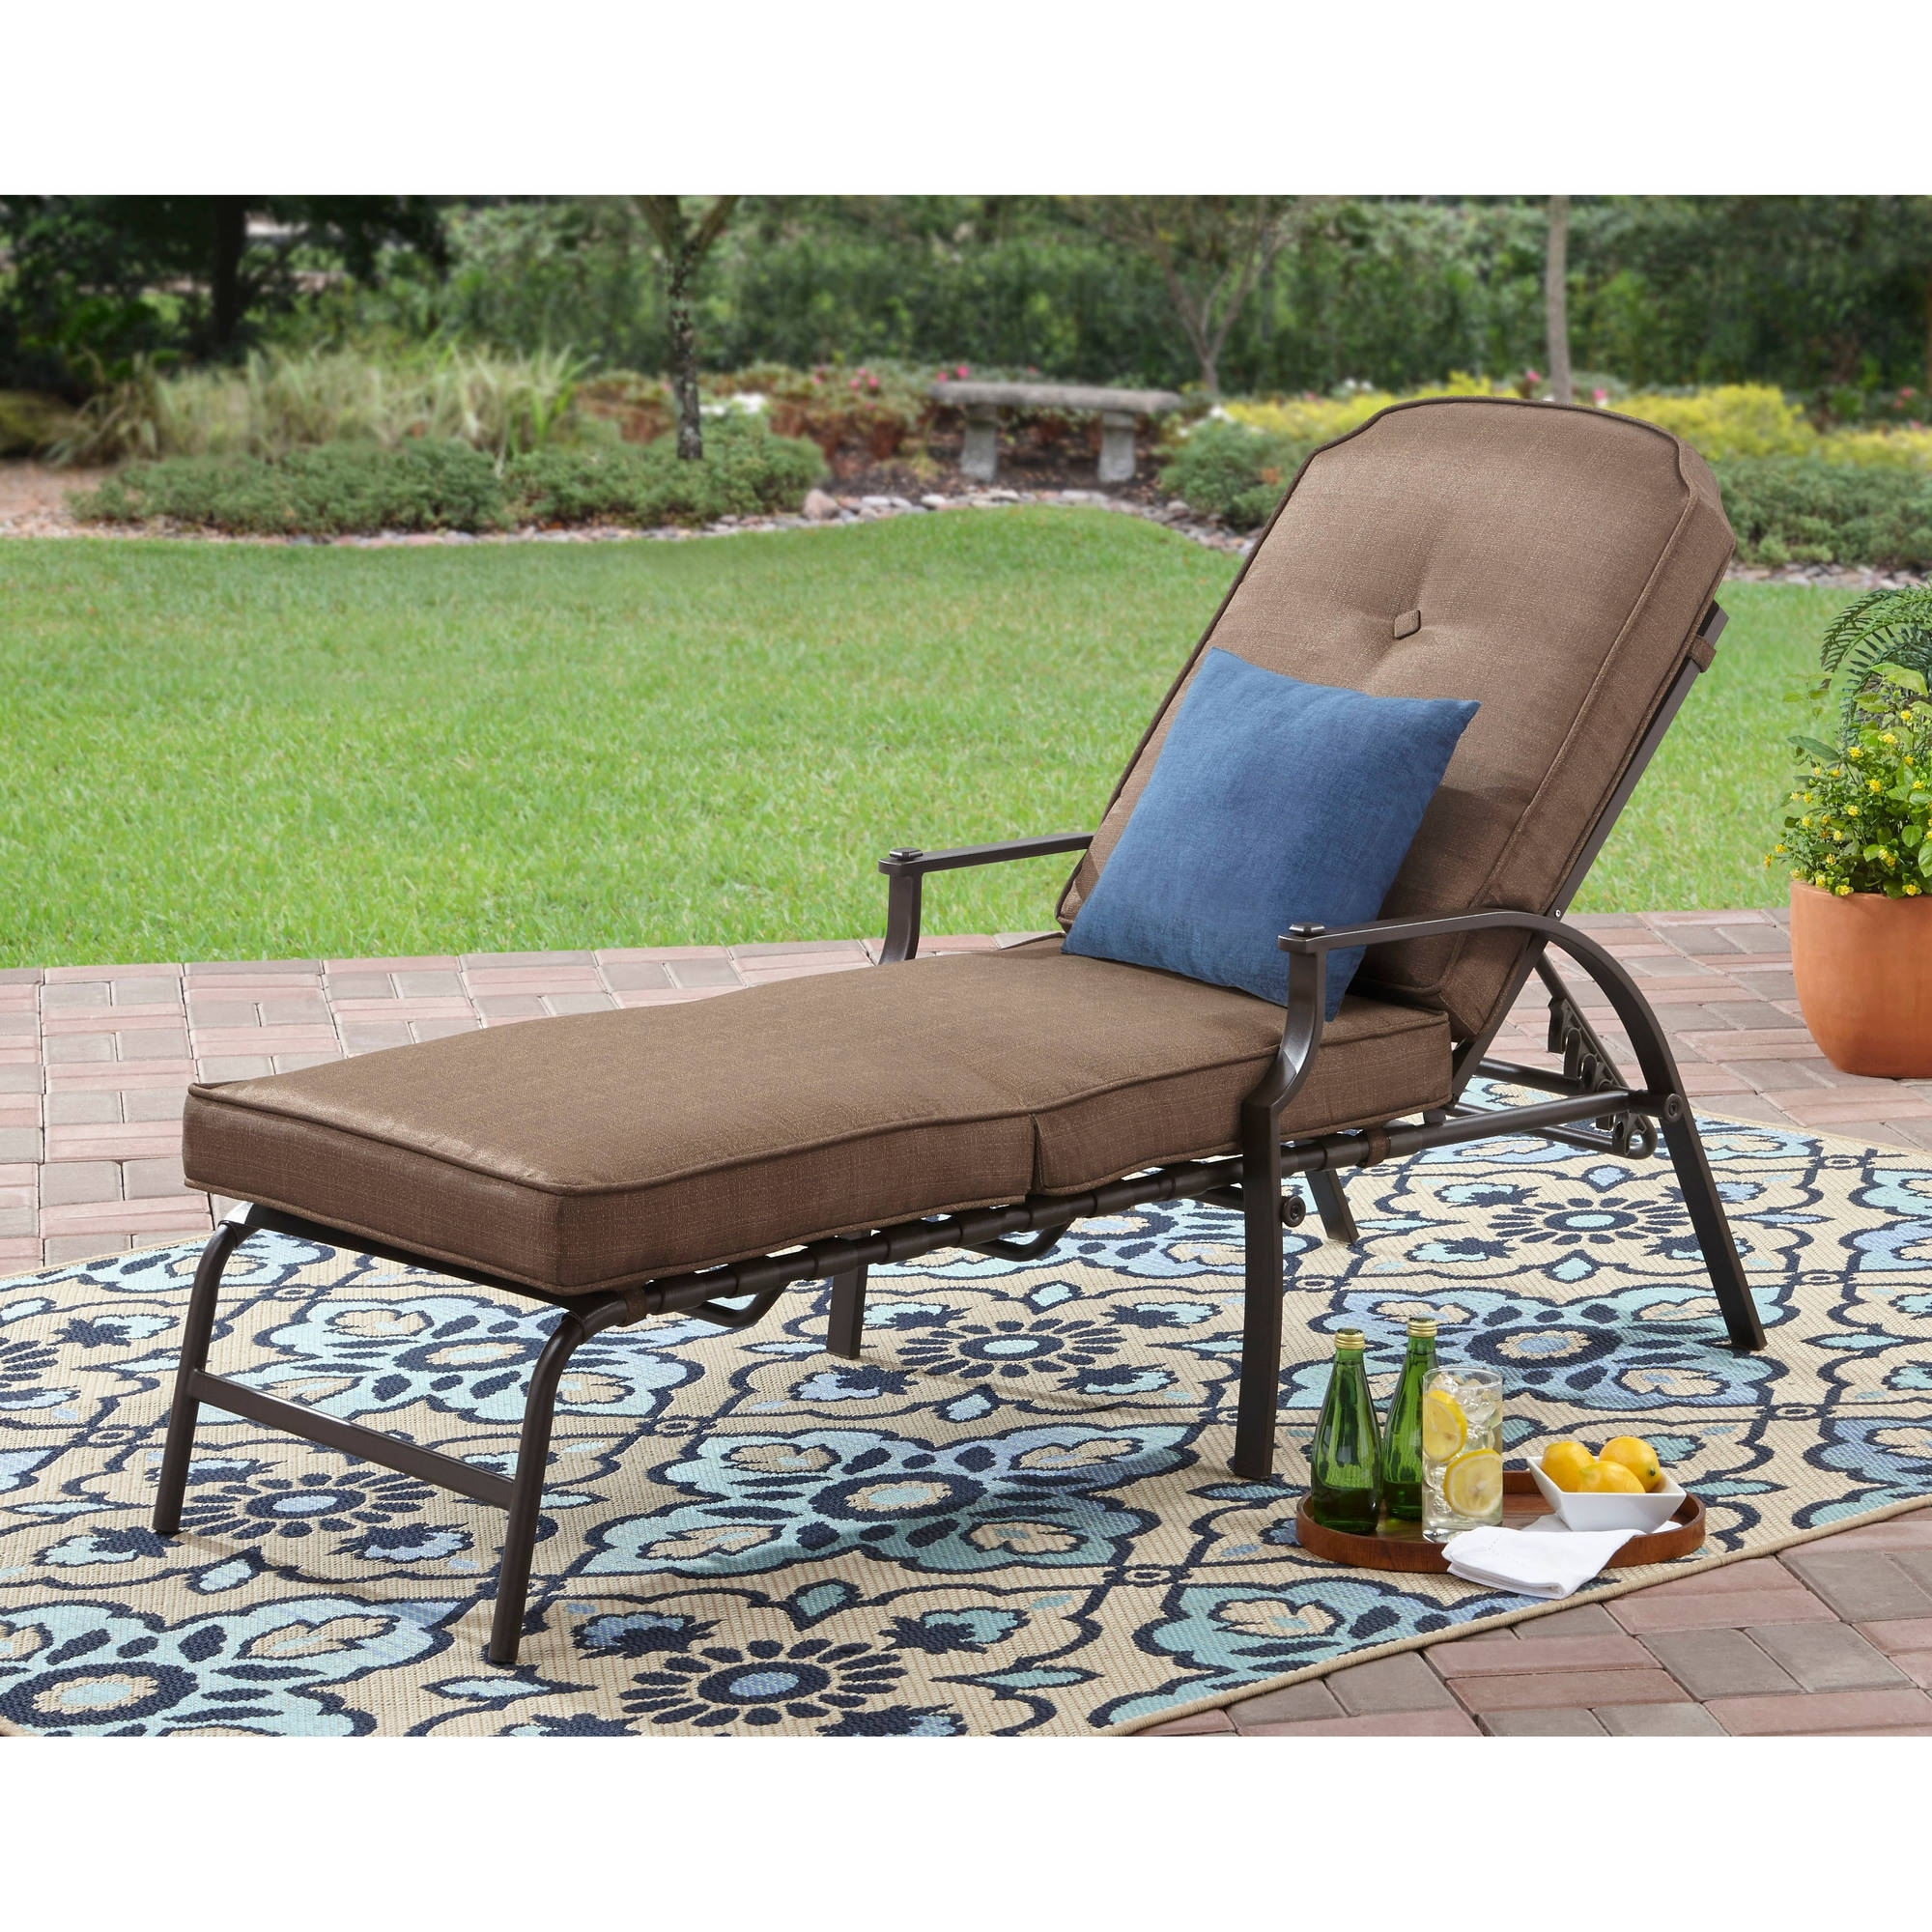 Most Popular Outdoor Chaise Lounge Chairs At Walmart Intended For Mainstays Wentworth Chaise Lounge – Walmart (View 7 of 15)